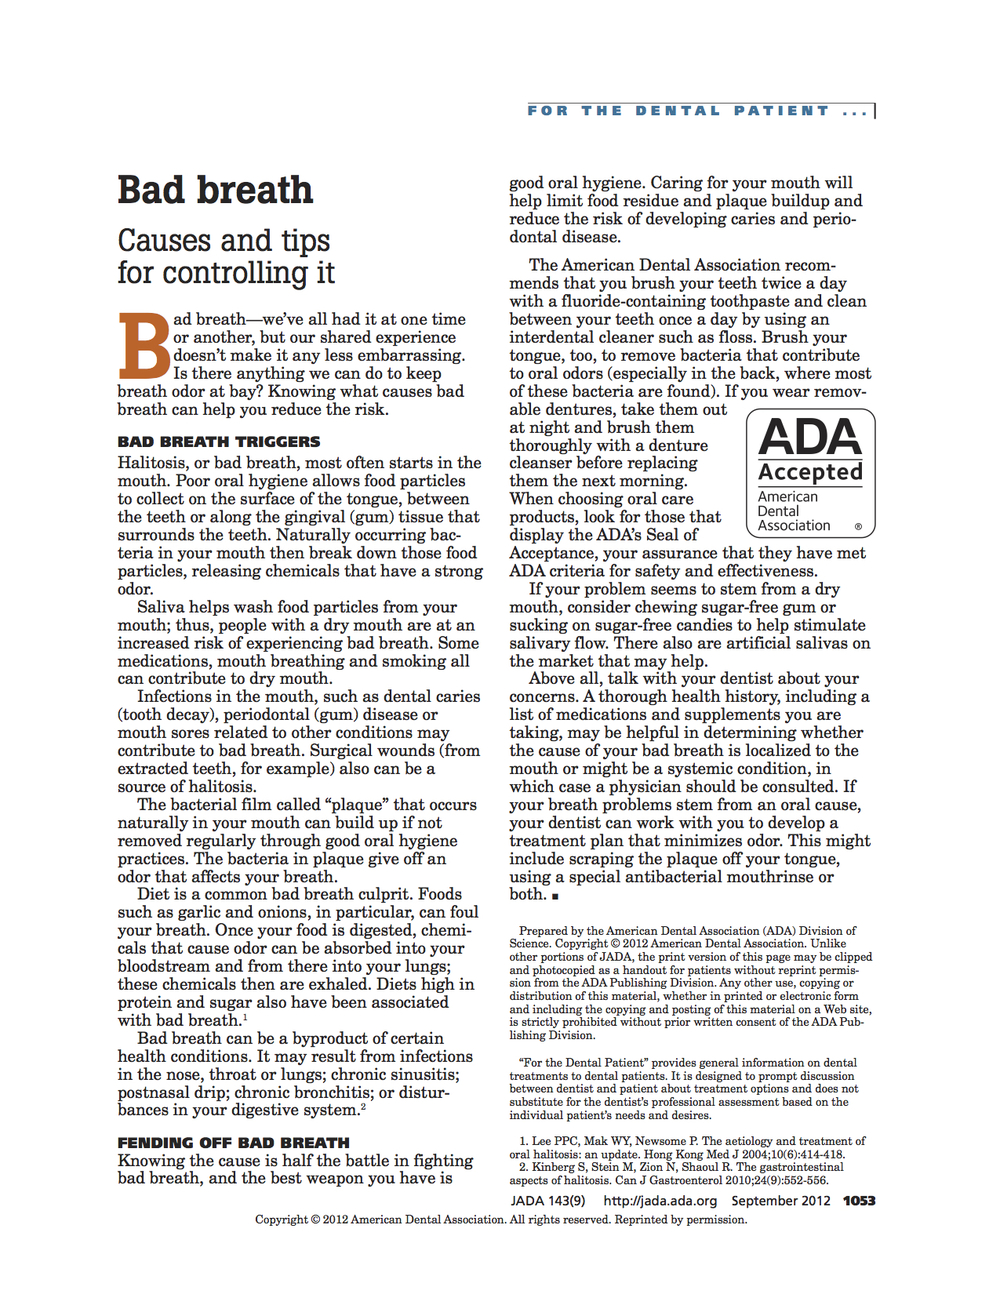 Bad Breath Management